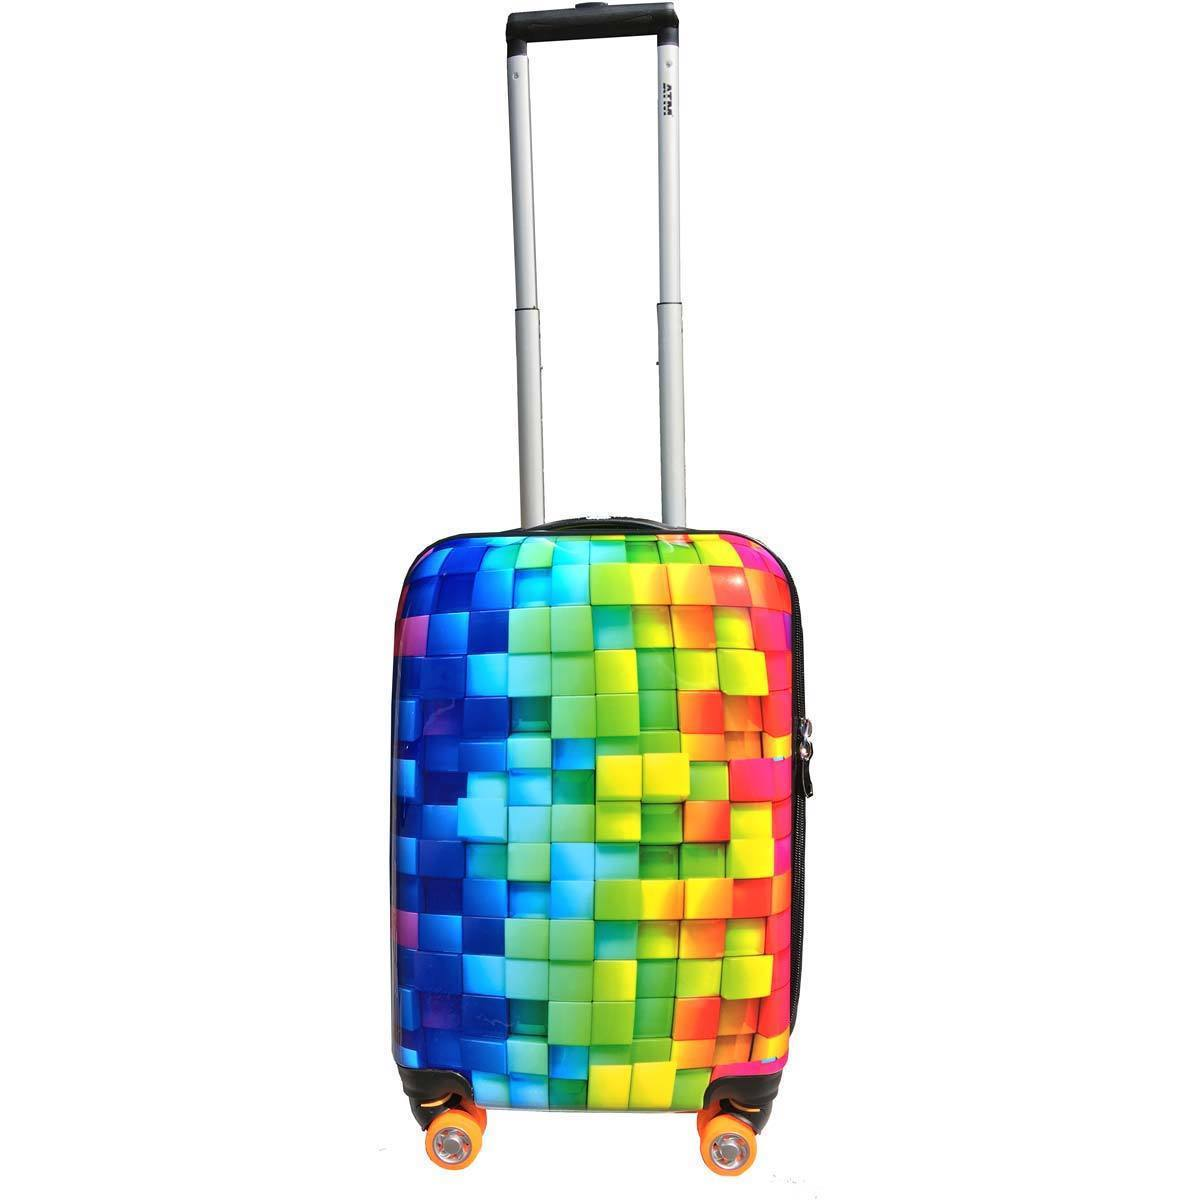 fa3bbdeee Shop ATM Luggage 3-D Rainbow 22-inch Harside Carry On Upright Suitcase -  Free Shipping Today - Overstock - 17983485